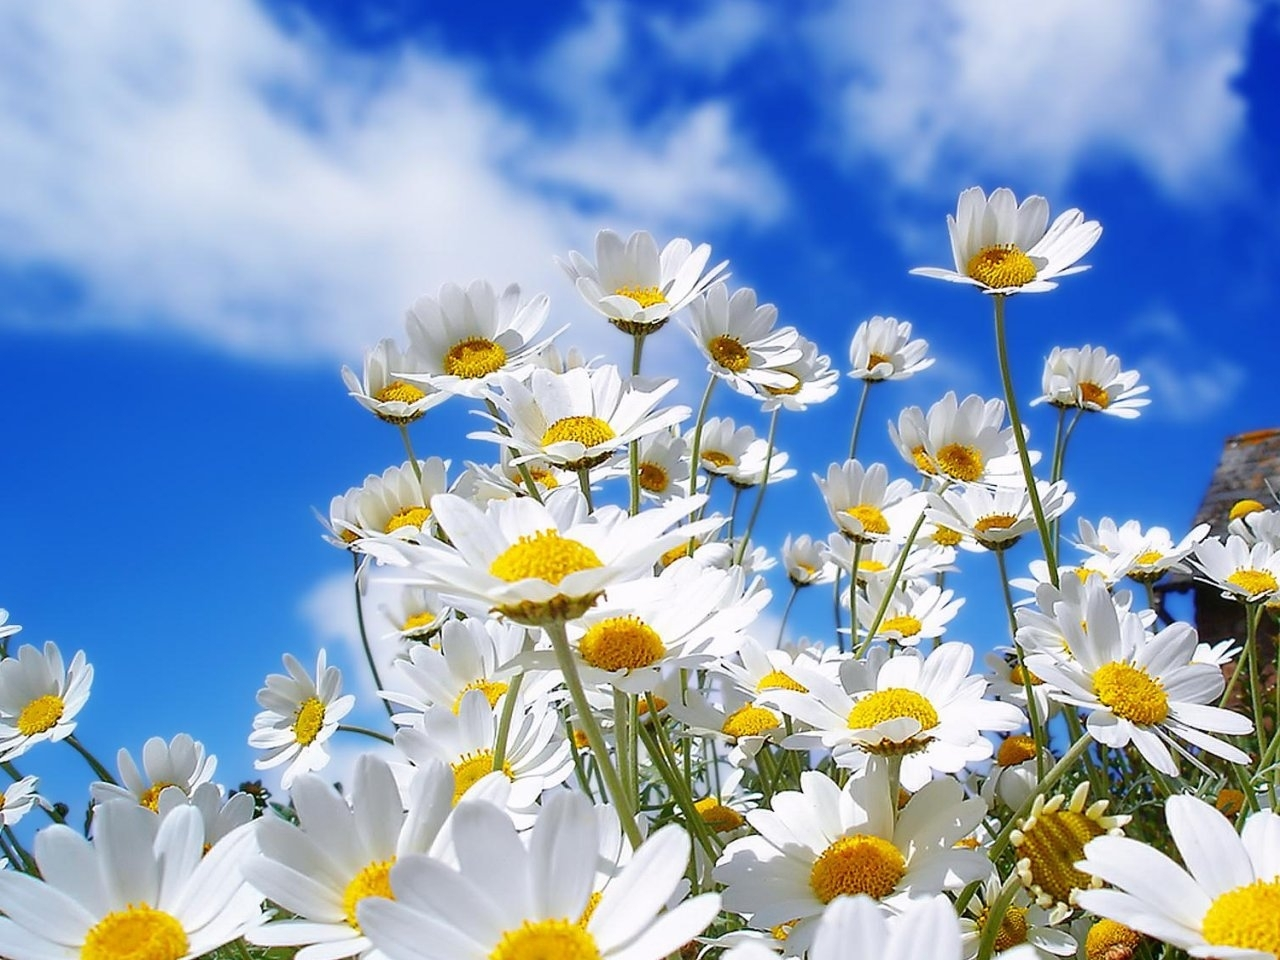 26118 download wallpaper Plants, Flowers, Sky, Camomile screensavers and pictures for free